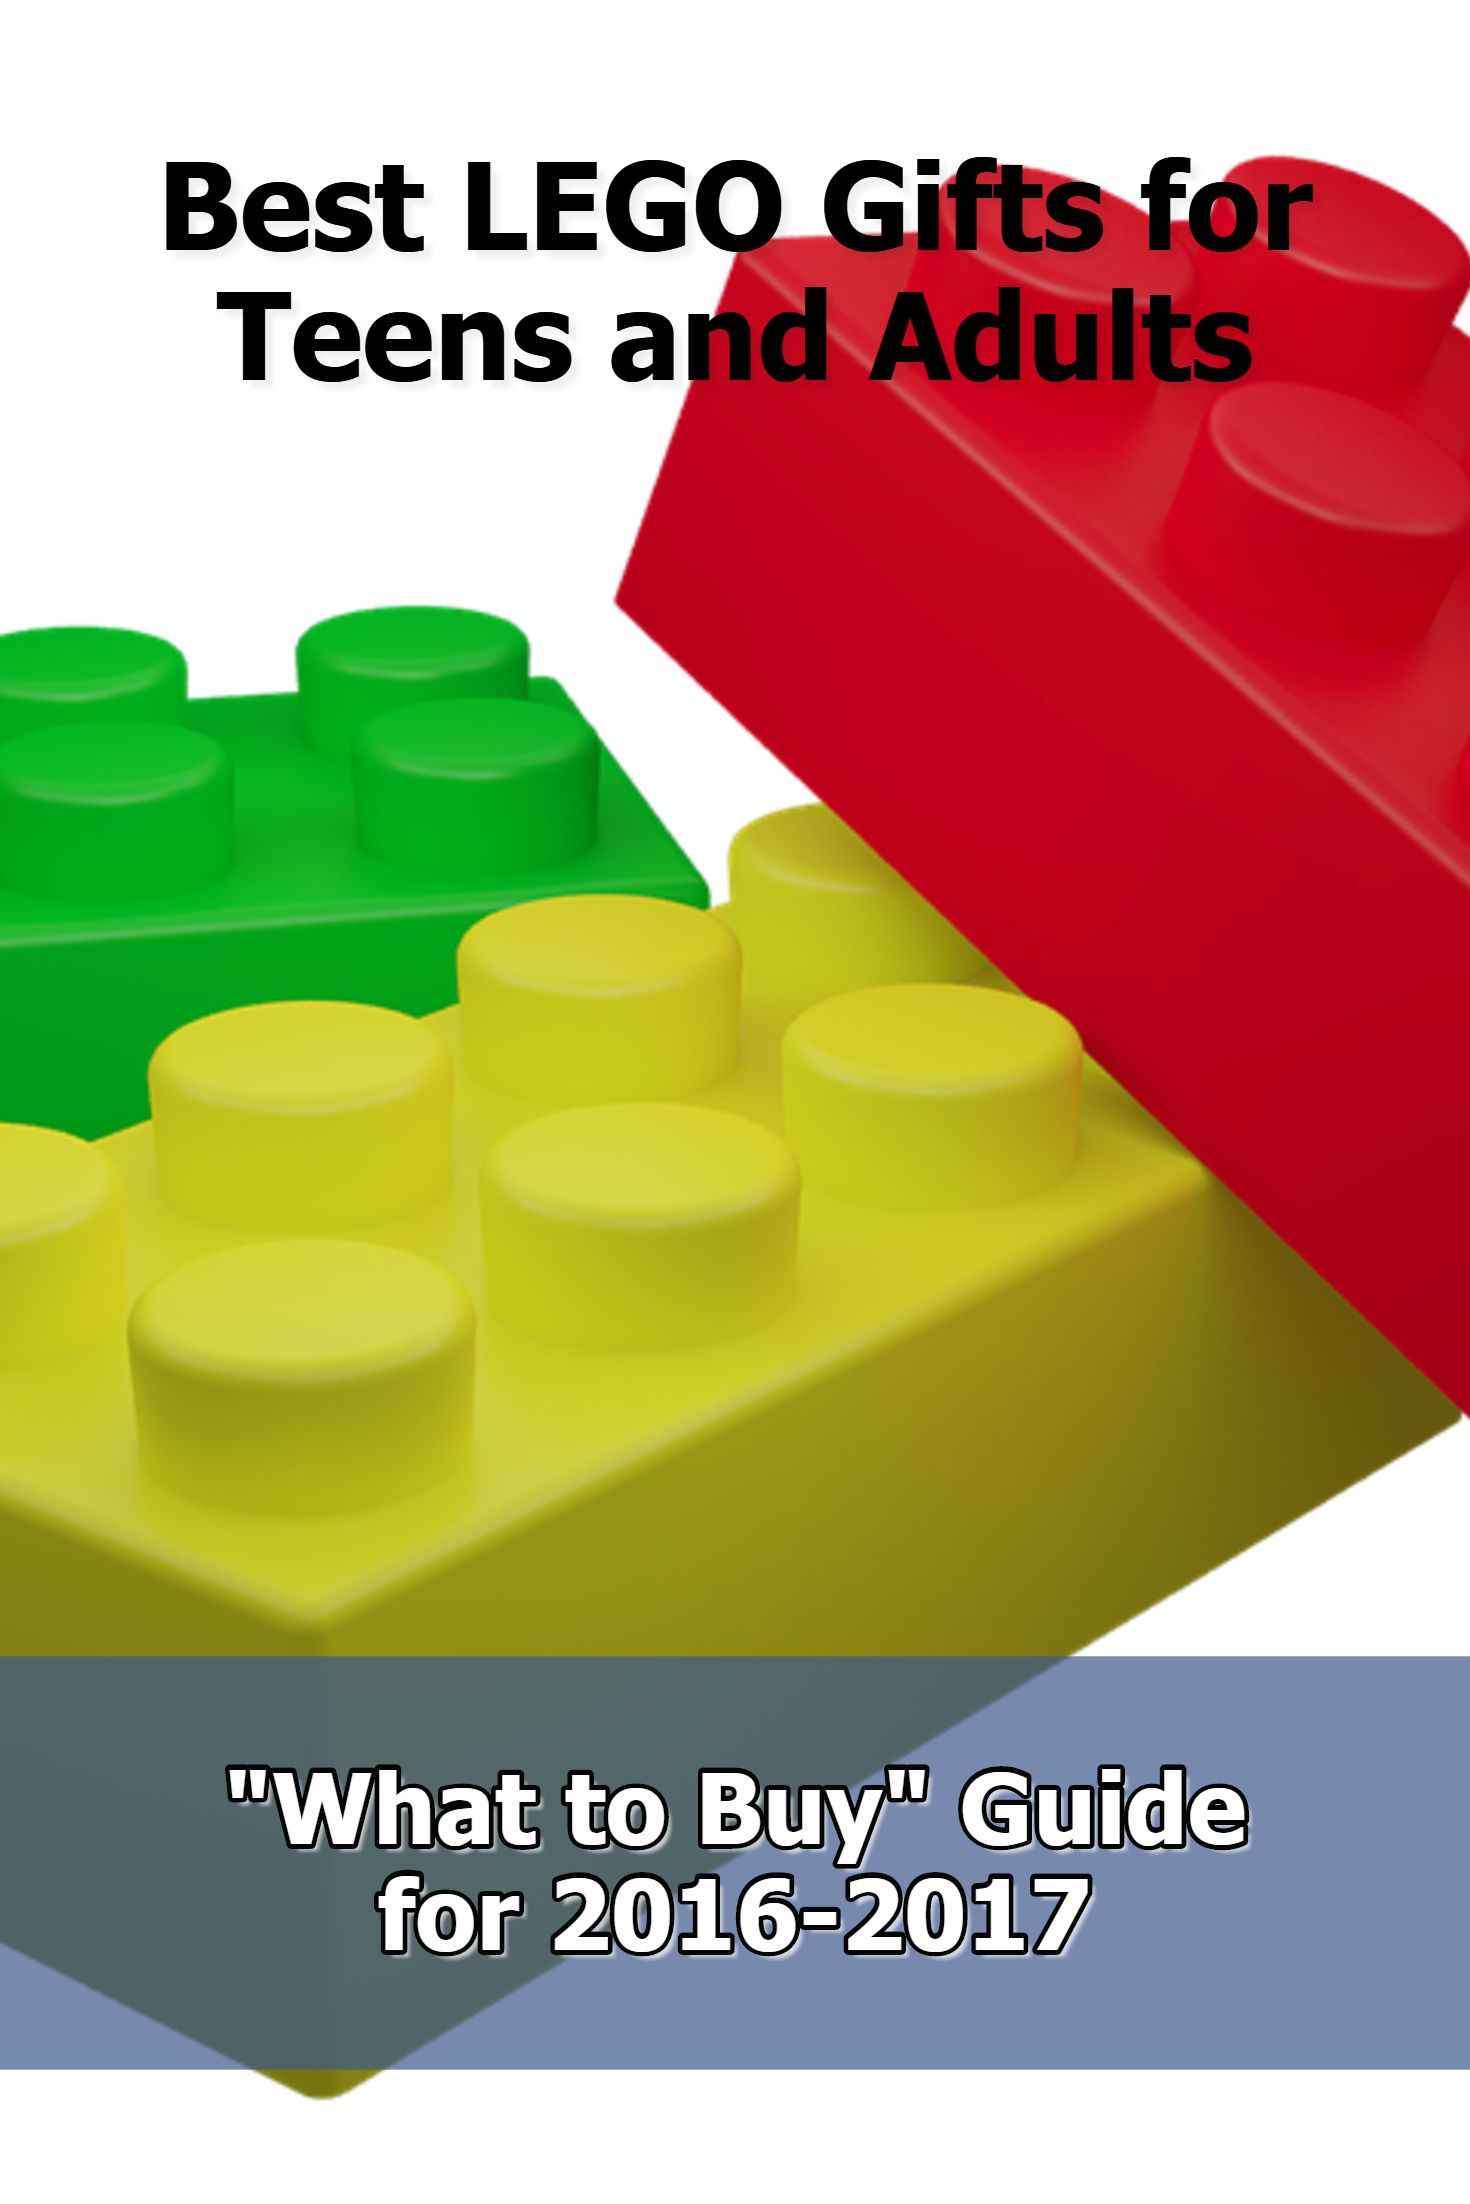 LEGO GIFTS FOR ADULTS AND TEENS 2016-2017 - Some great tips on fun gifts  for the adult LEGO aficionados among us.  ) 3c50460234662